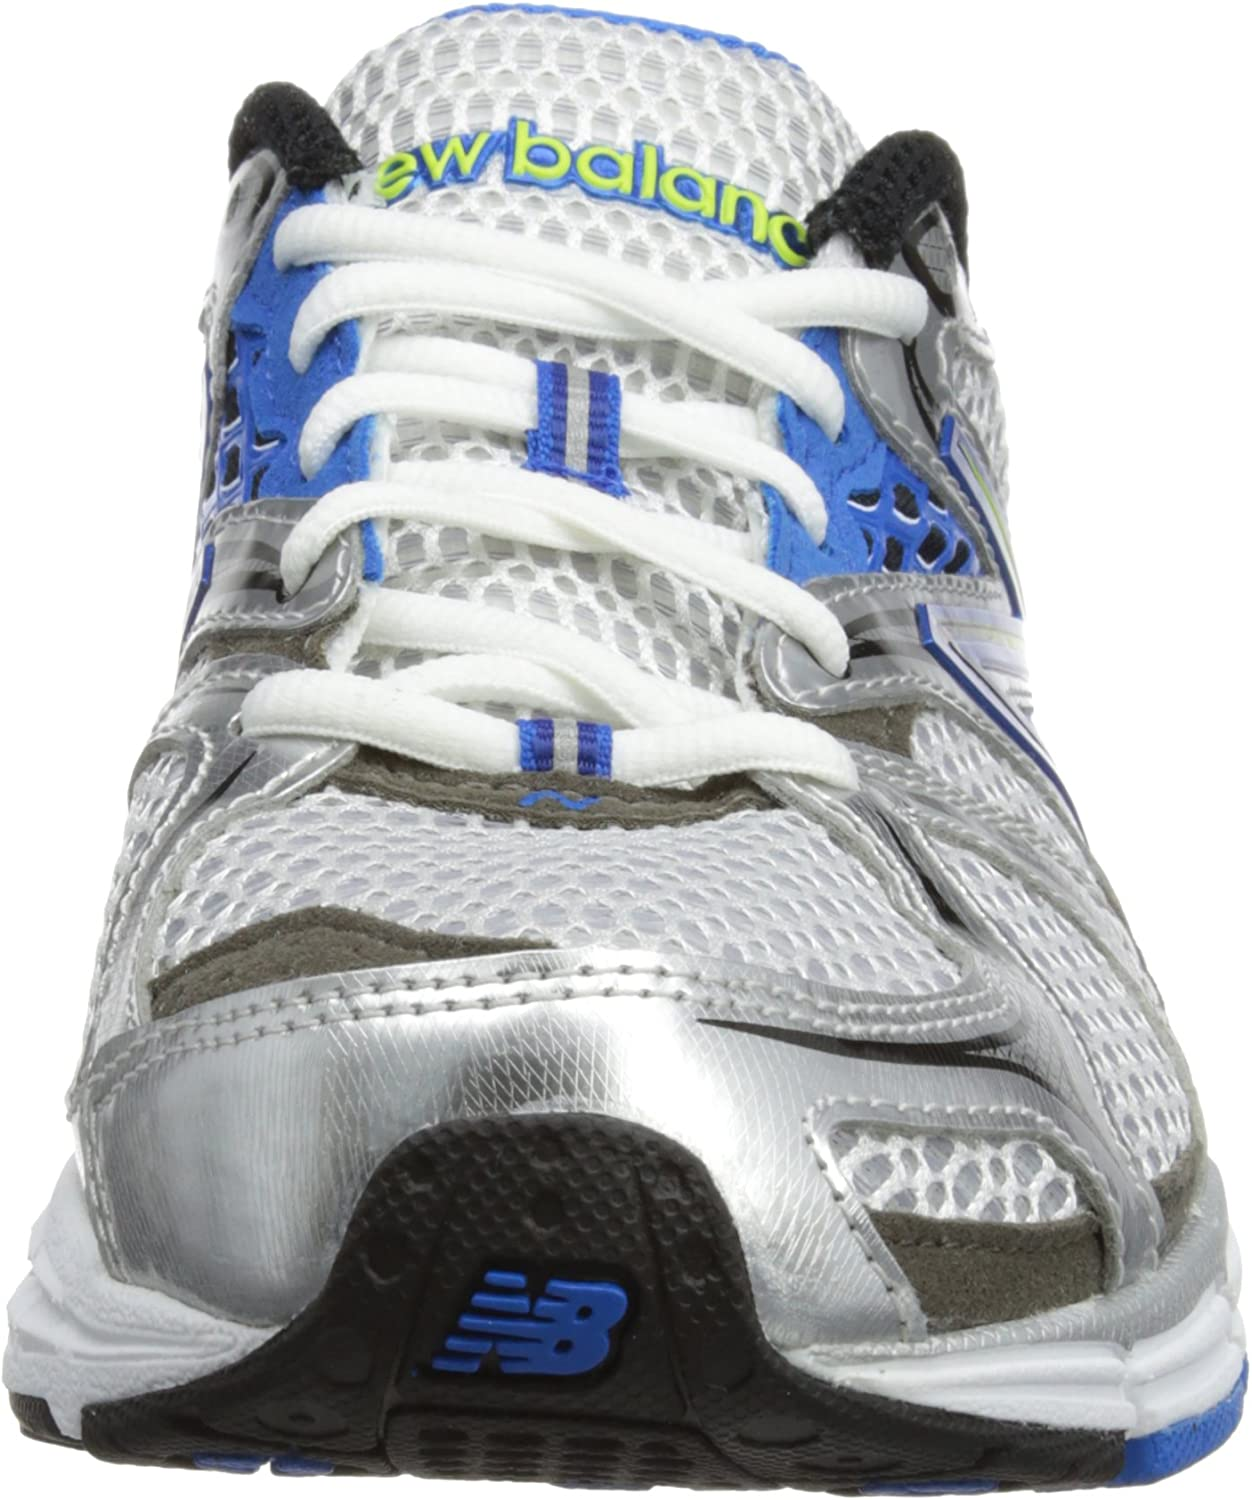 New Balance M940Wb2, Zapatillas de Running para Hombre, White with Silver & Blue Atoll, 16.5 UK: Amazon.es: Zapatos y complementos